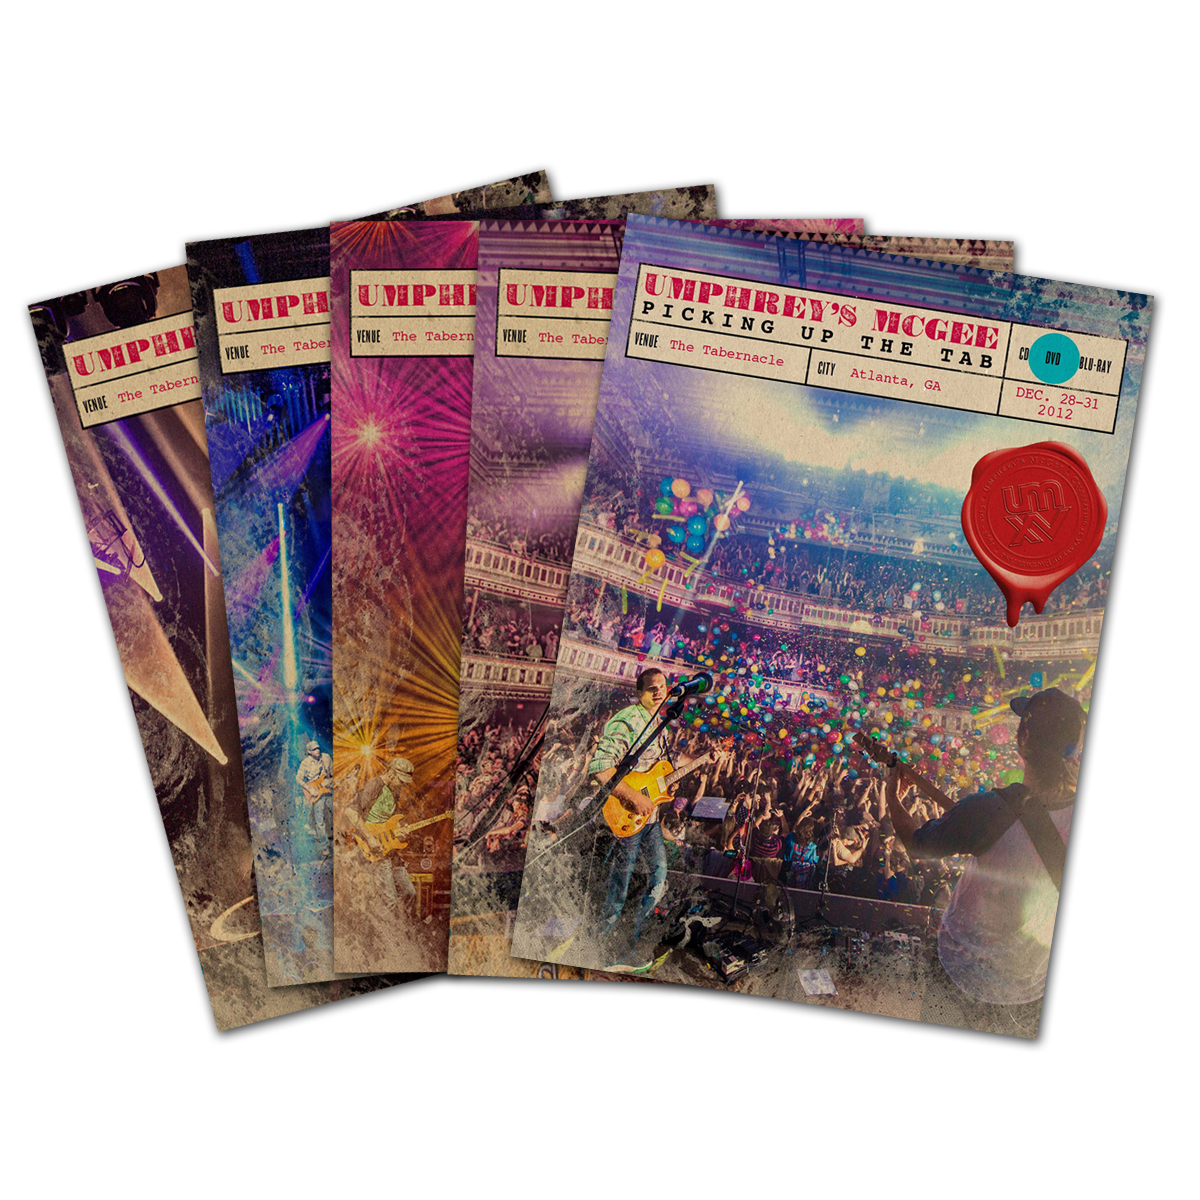 Live from the Tabernacle - All Night Long Bundle